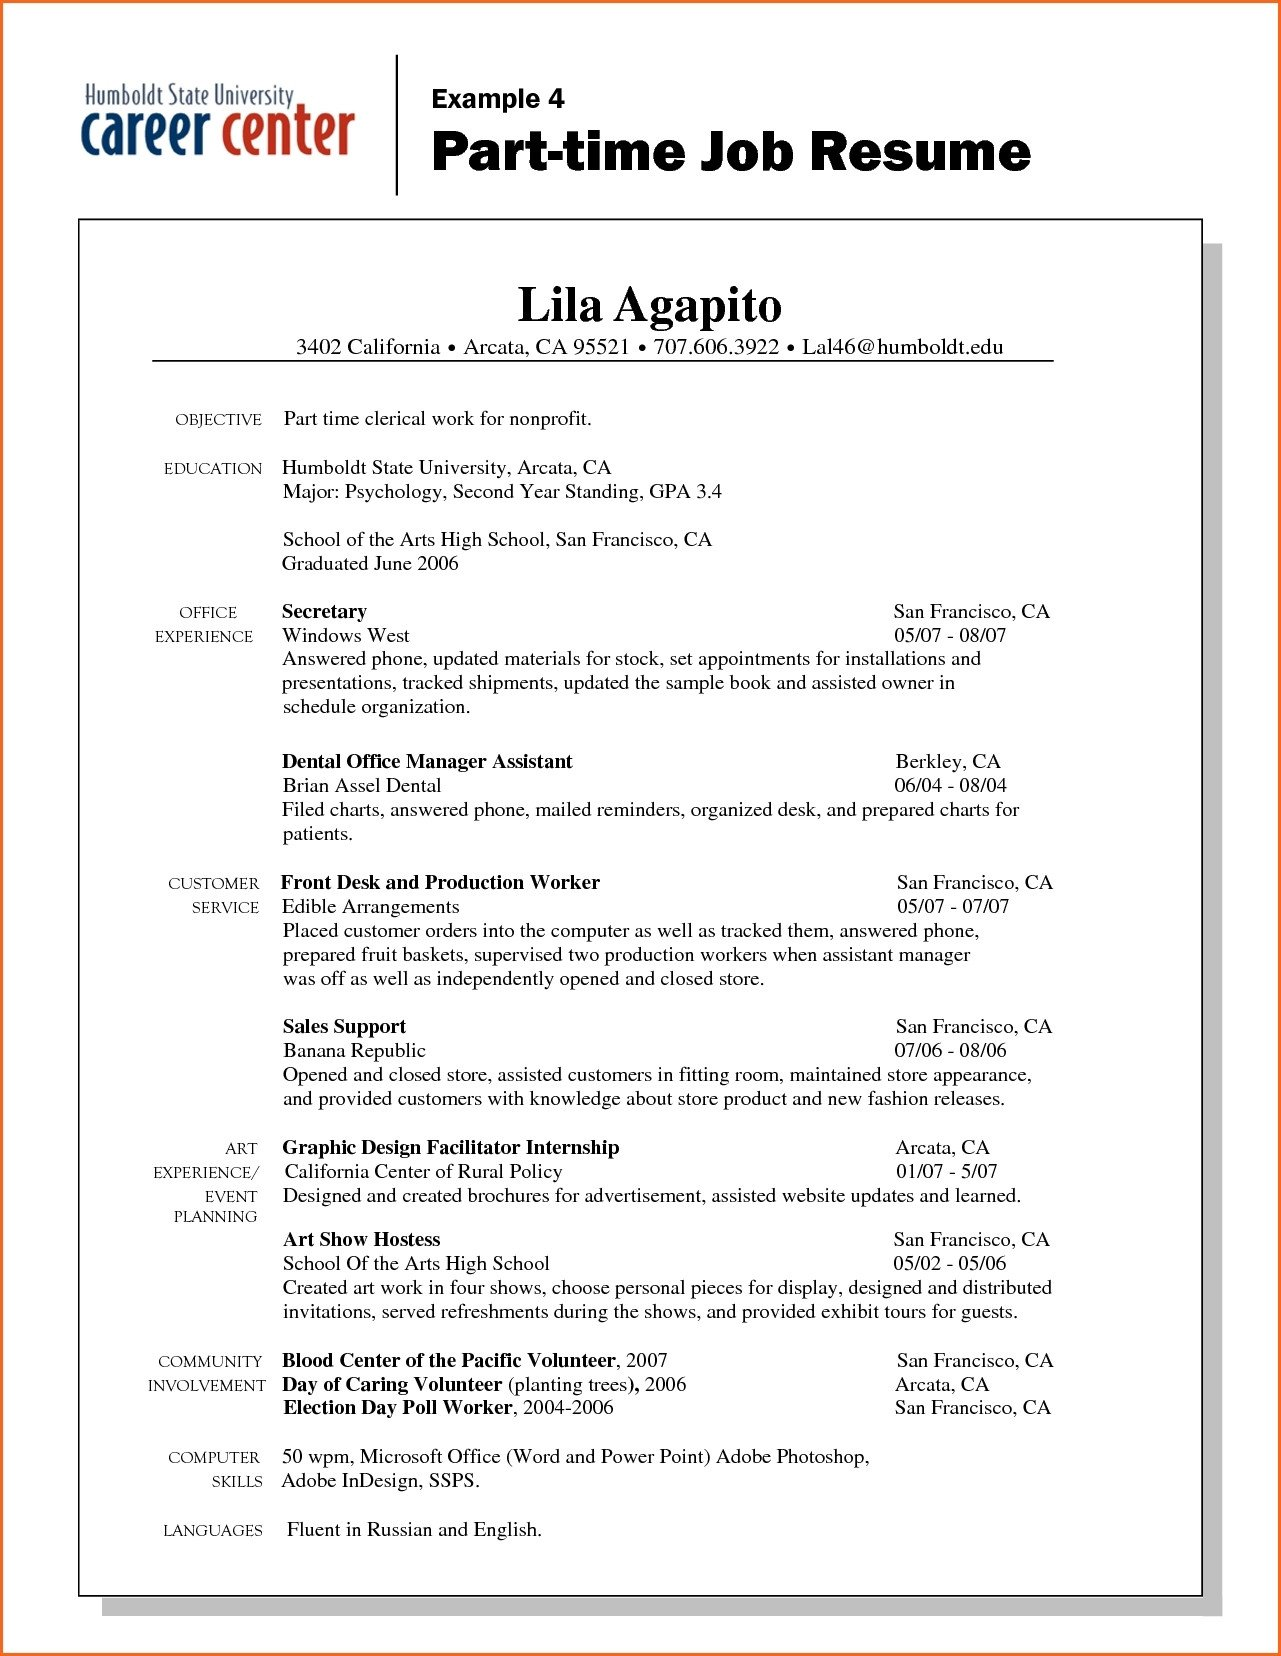 First Job Resume Template Microsoft Word flowersheet